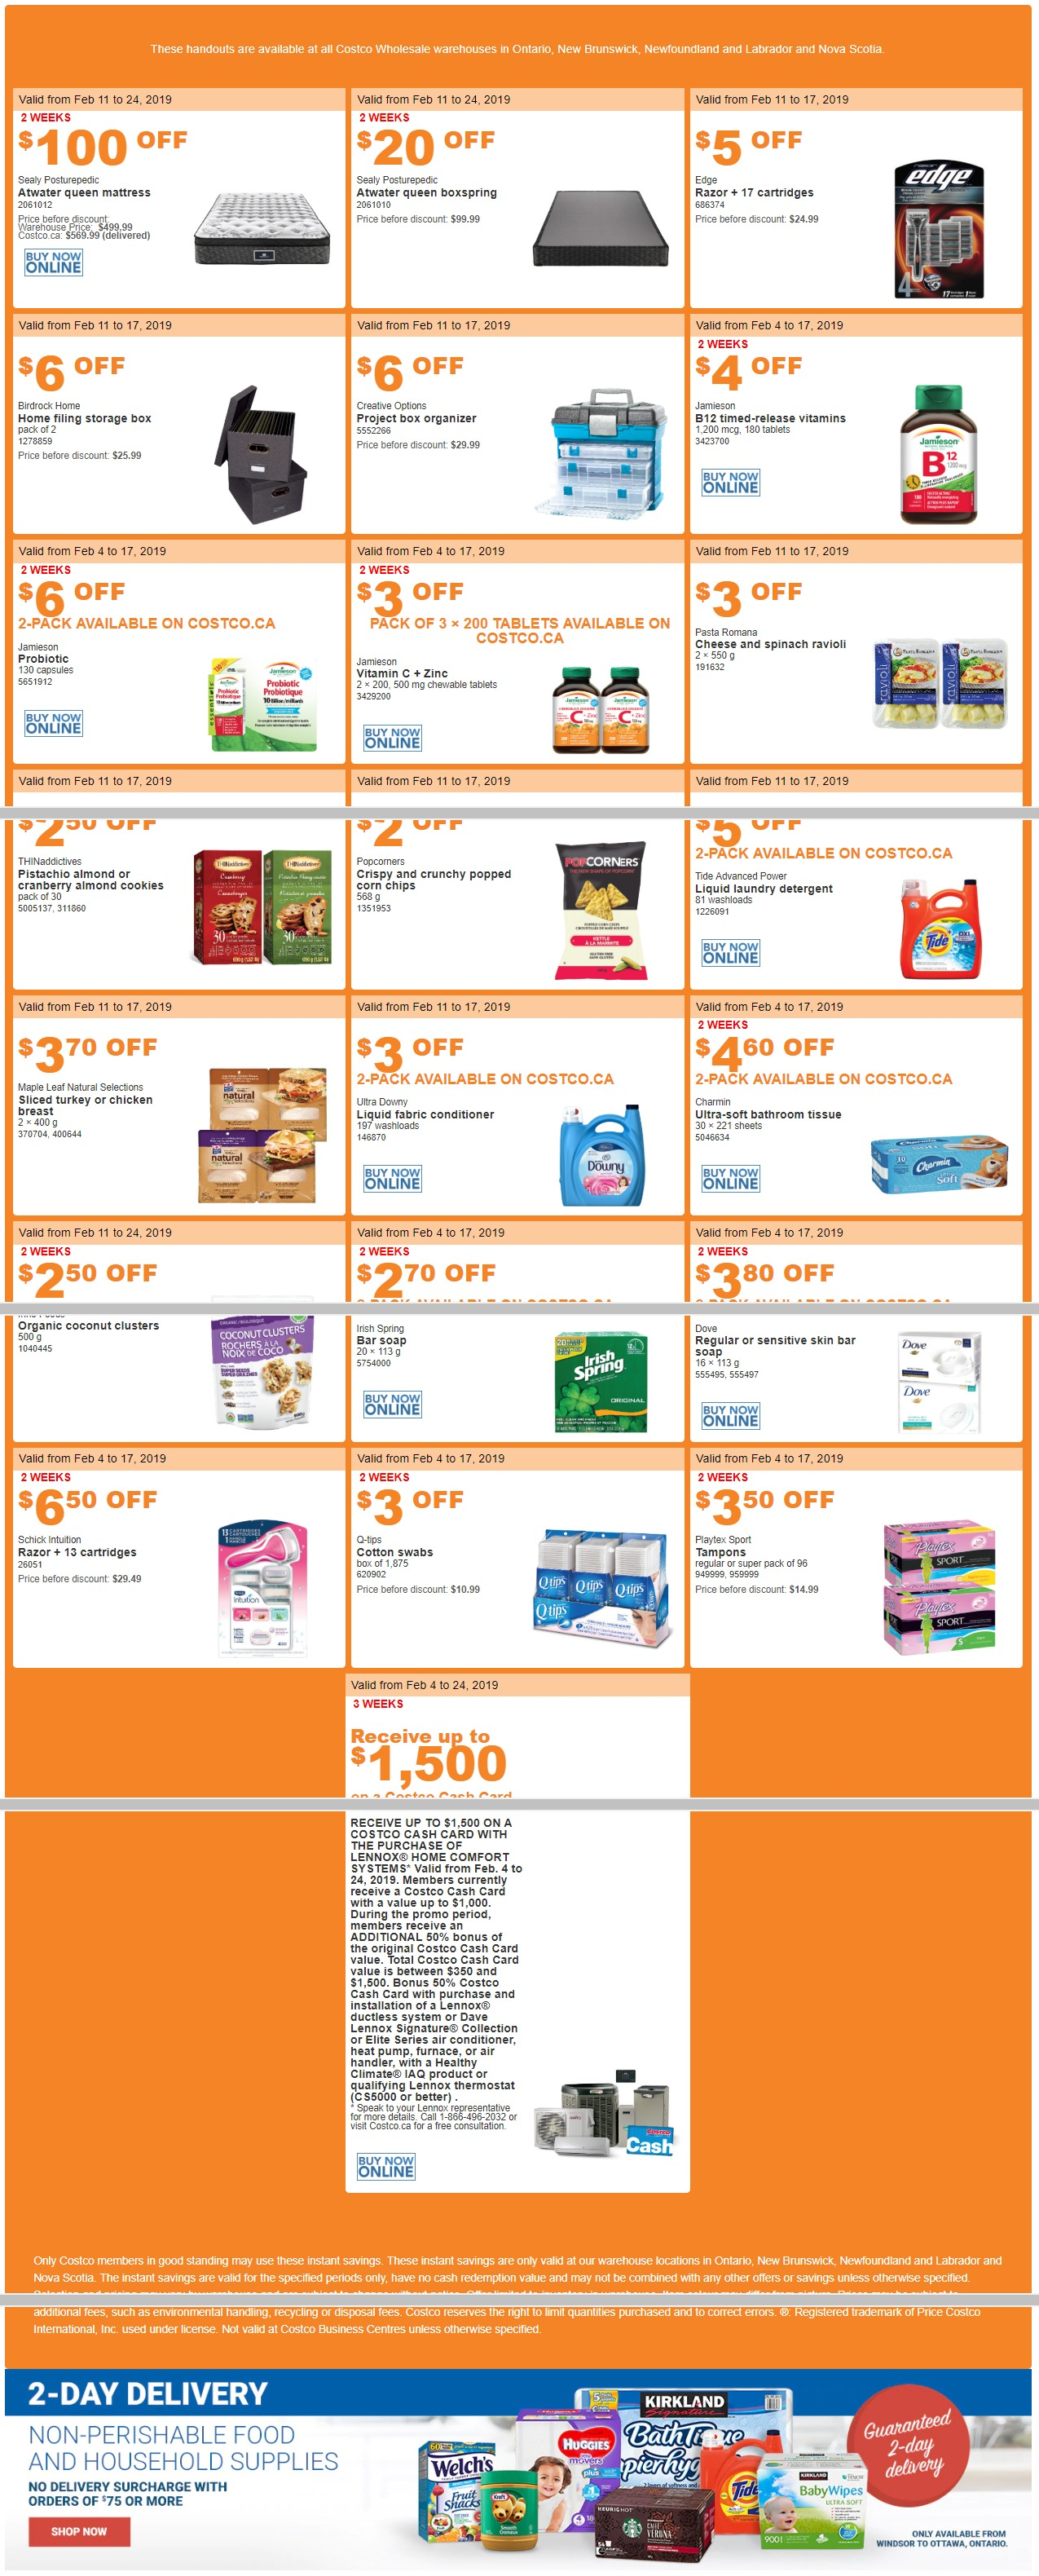 Costco Canada Flyer February 11 - February 17, 2019